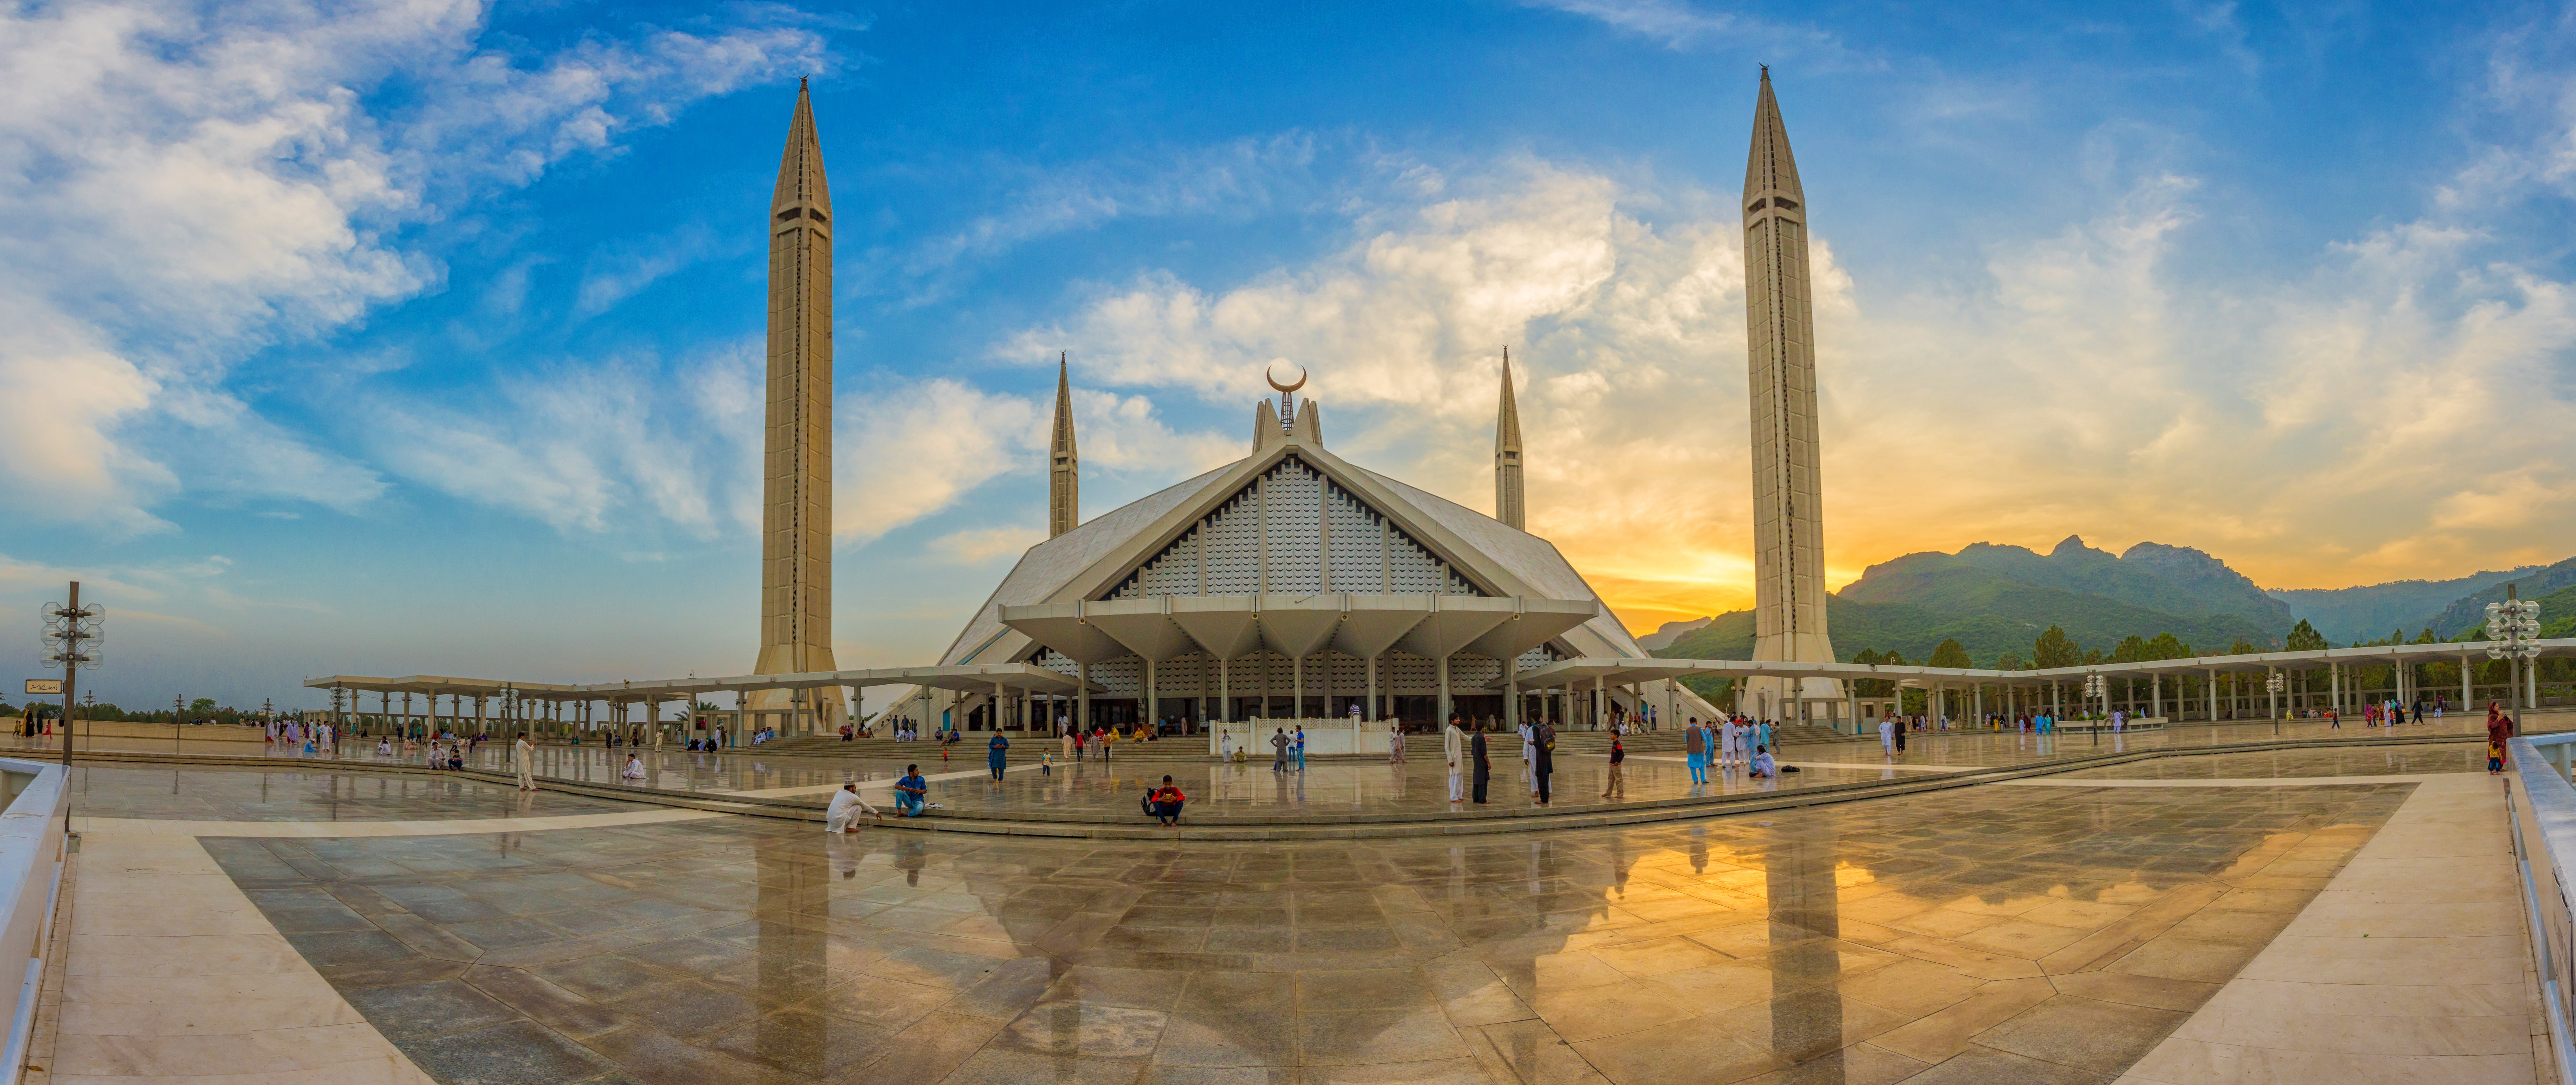 500 pakistan pictures [hd] download free images on unsplash4 post museum under golden hour